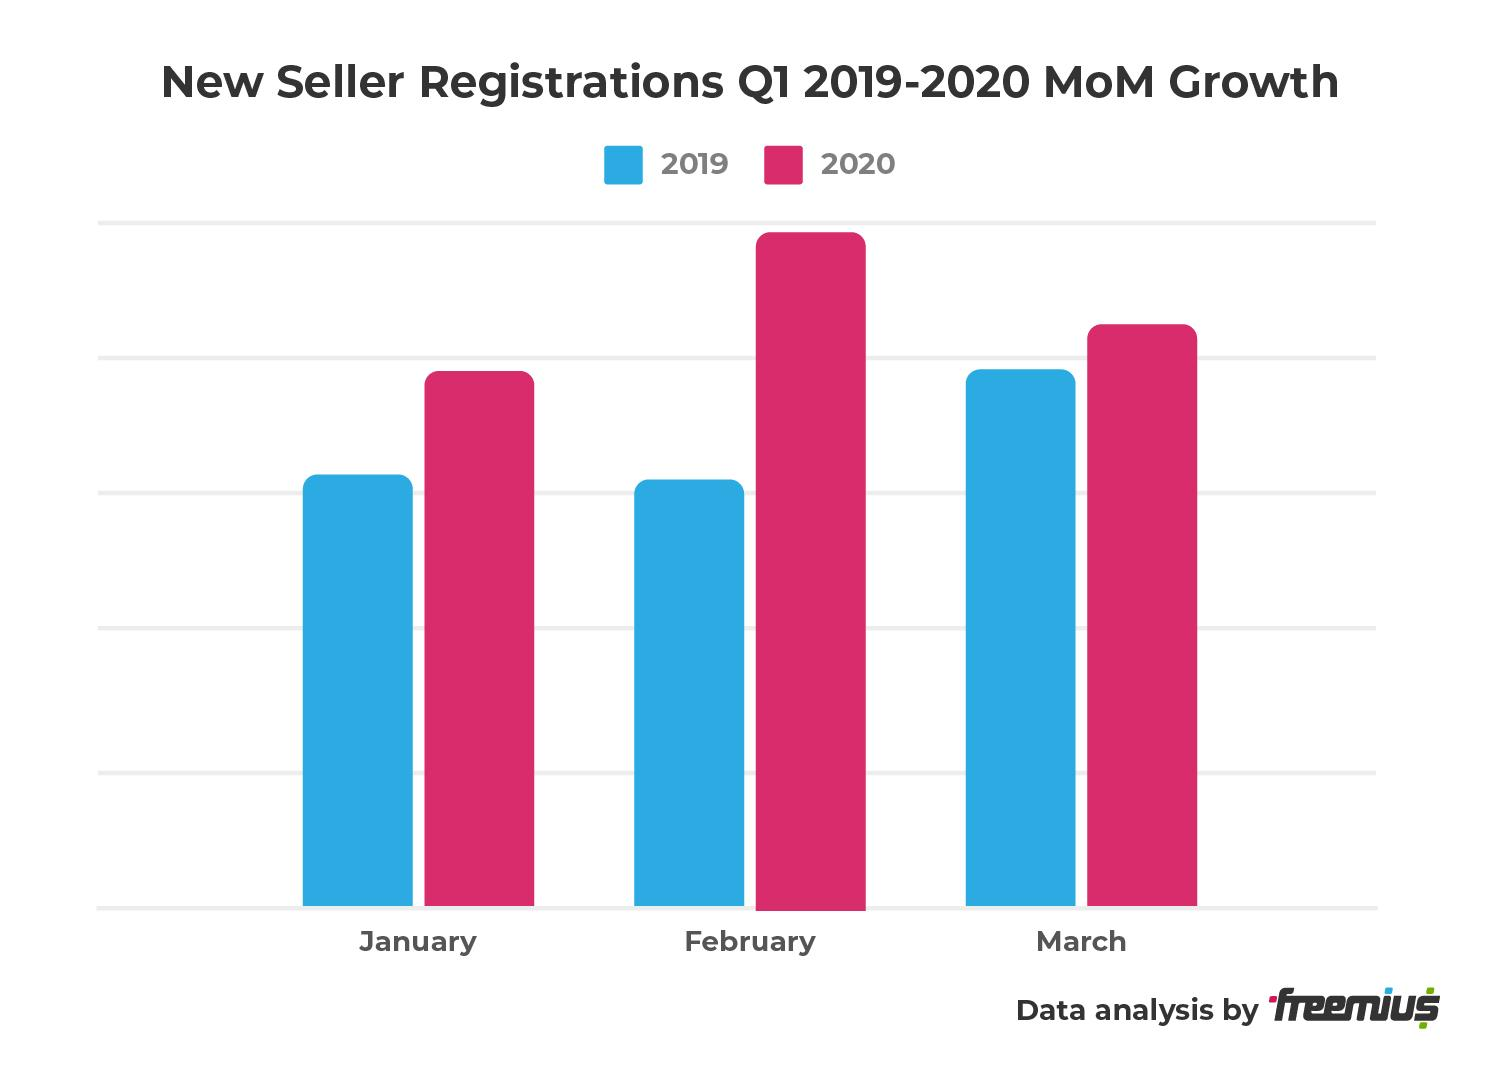 Freemius data analysis - New Seller Registrations Q1 2019-2020 MoM Growth